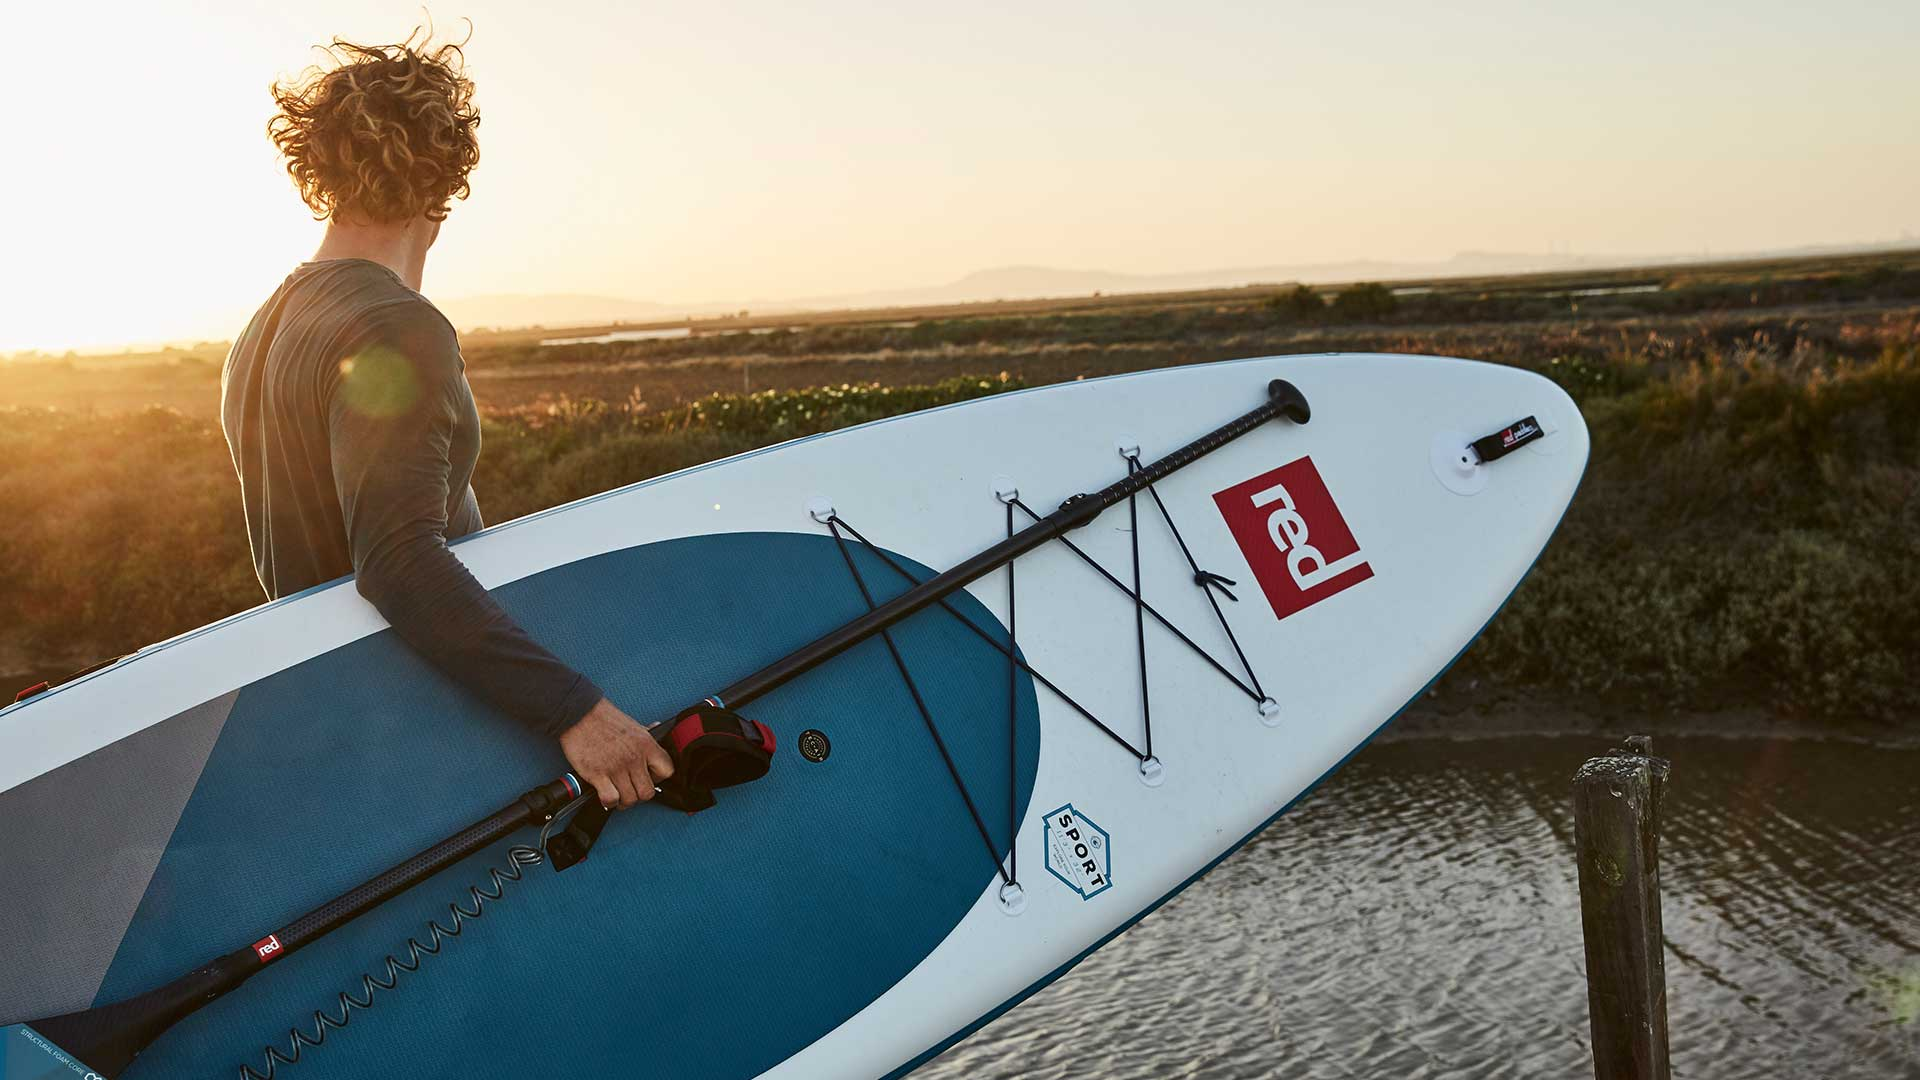 redpaddleco-110-sport-inflatable-paddle-board-desktop-gallery-2